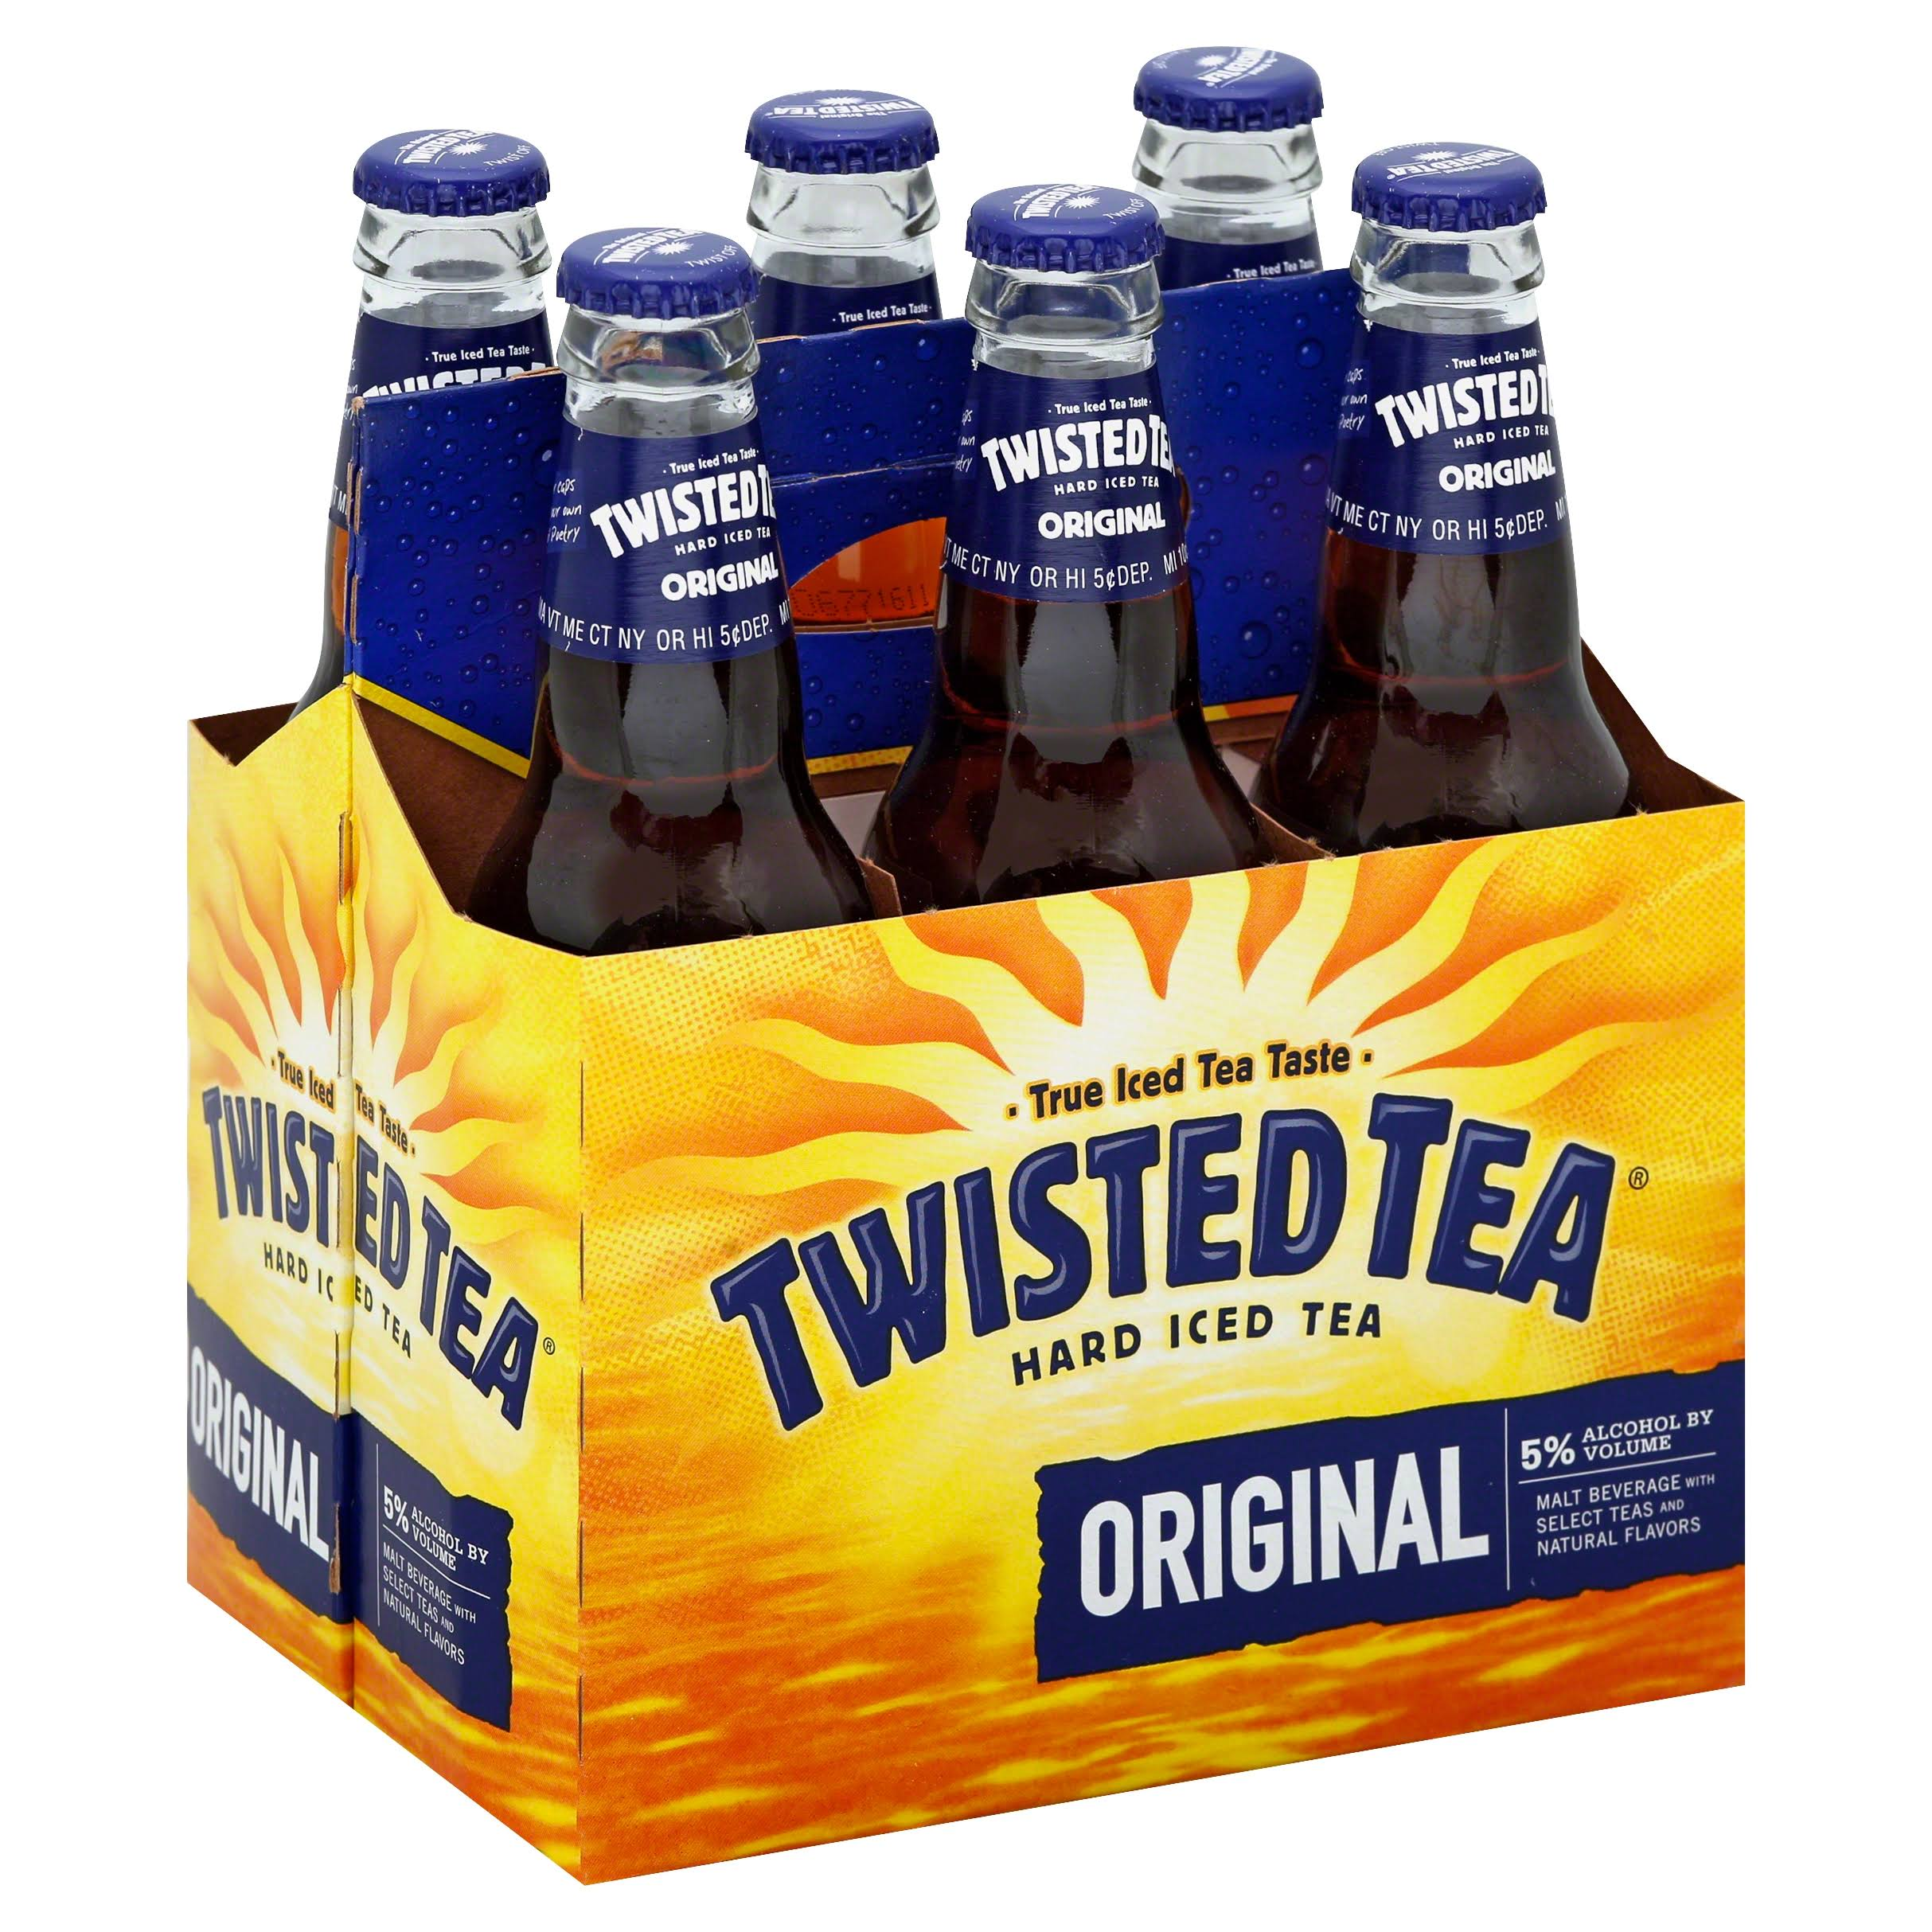 Twisted Tea Hard Iced Tea - Original, 6 Count